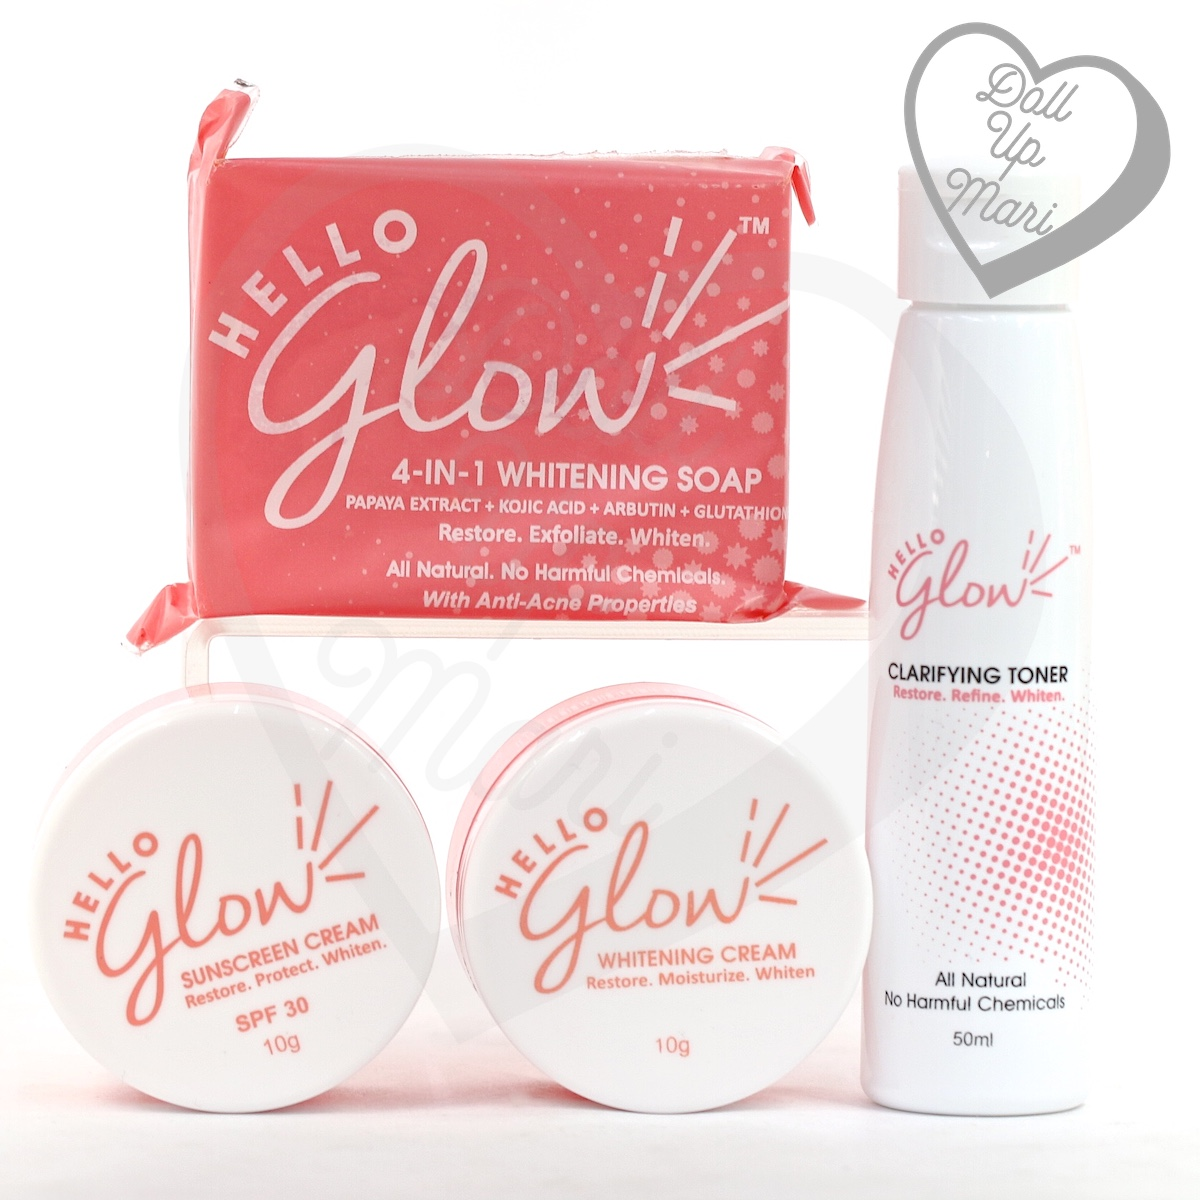 Hello Glow by Ever Bilena product spread